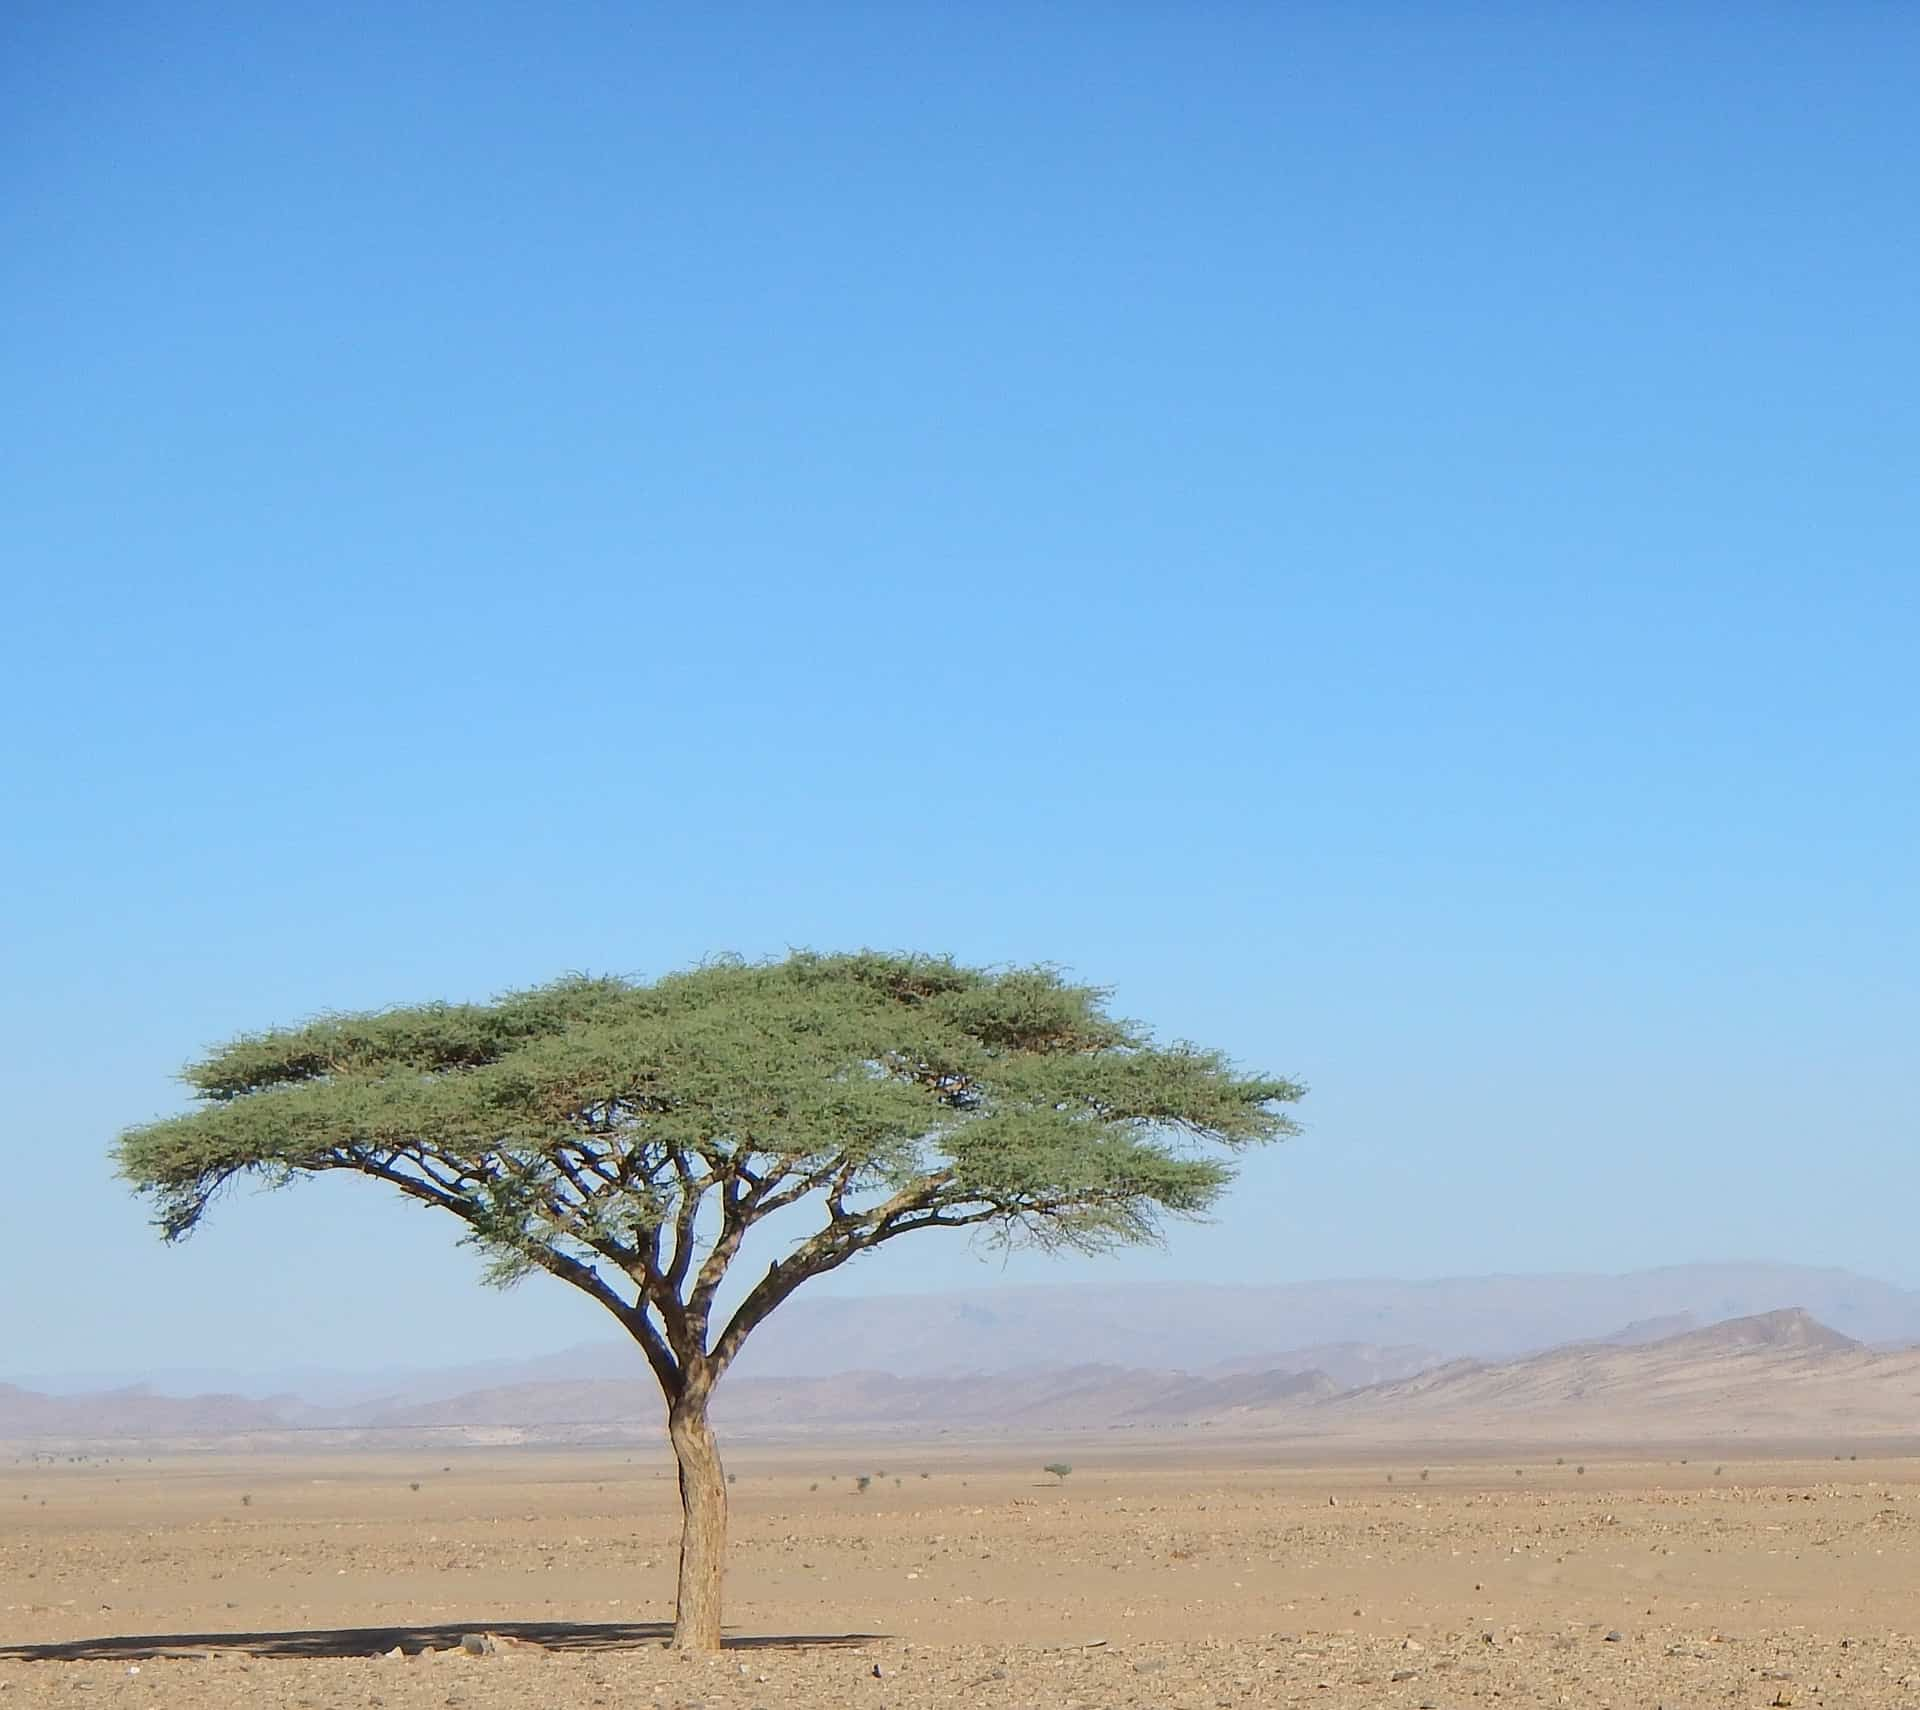 A green tree stands tall in the Sahara Desert